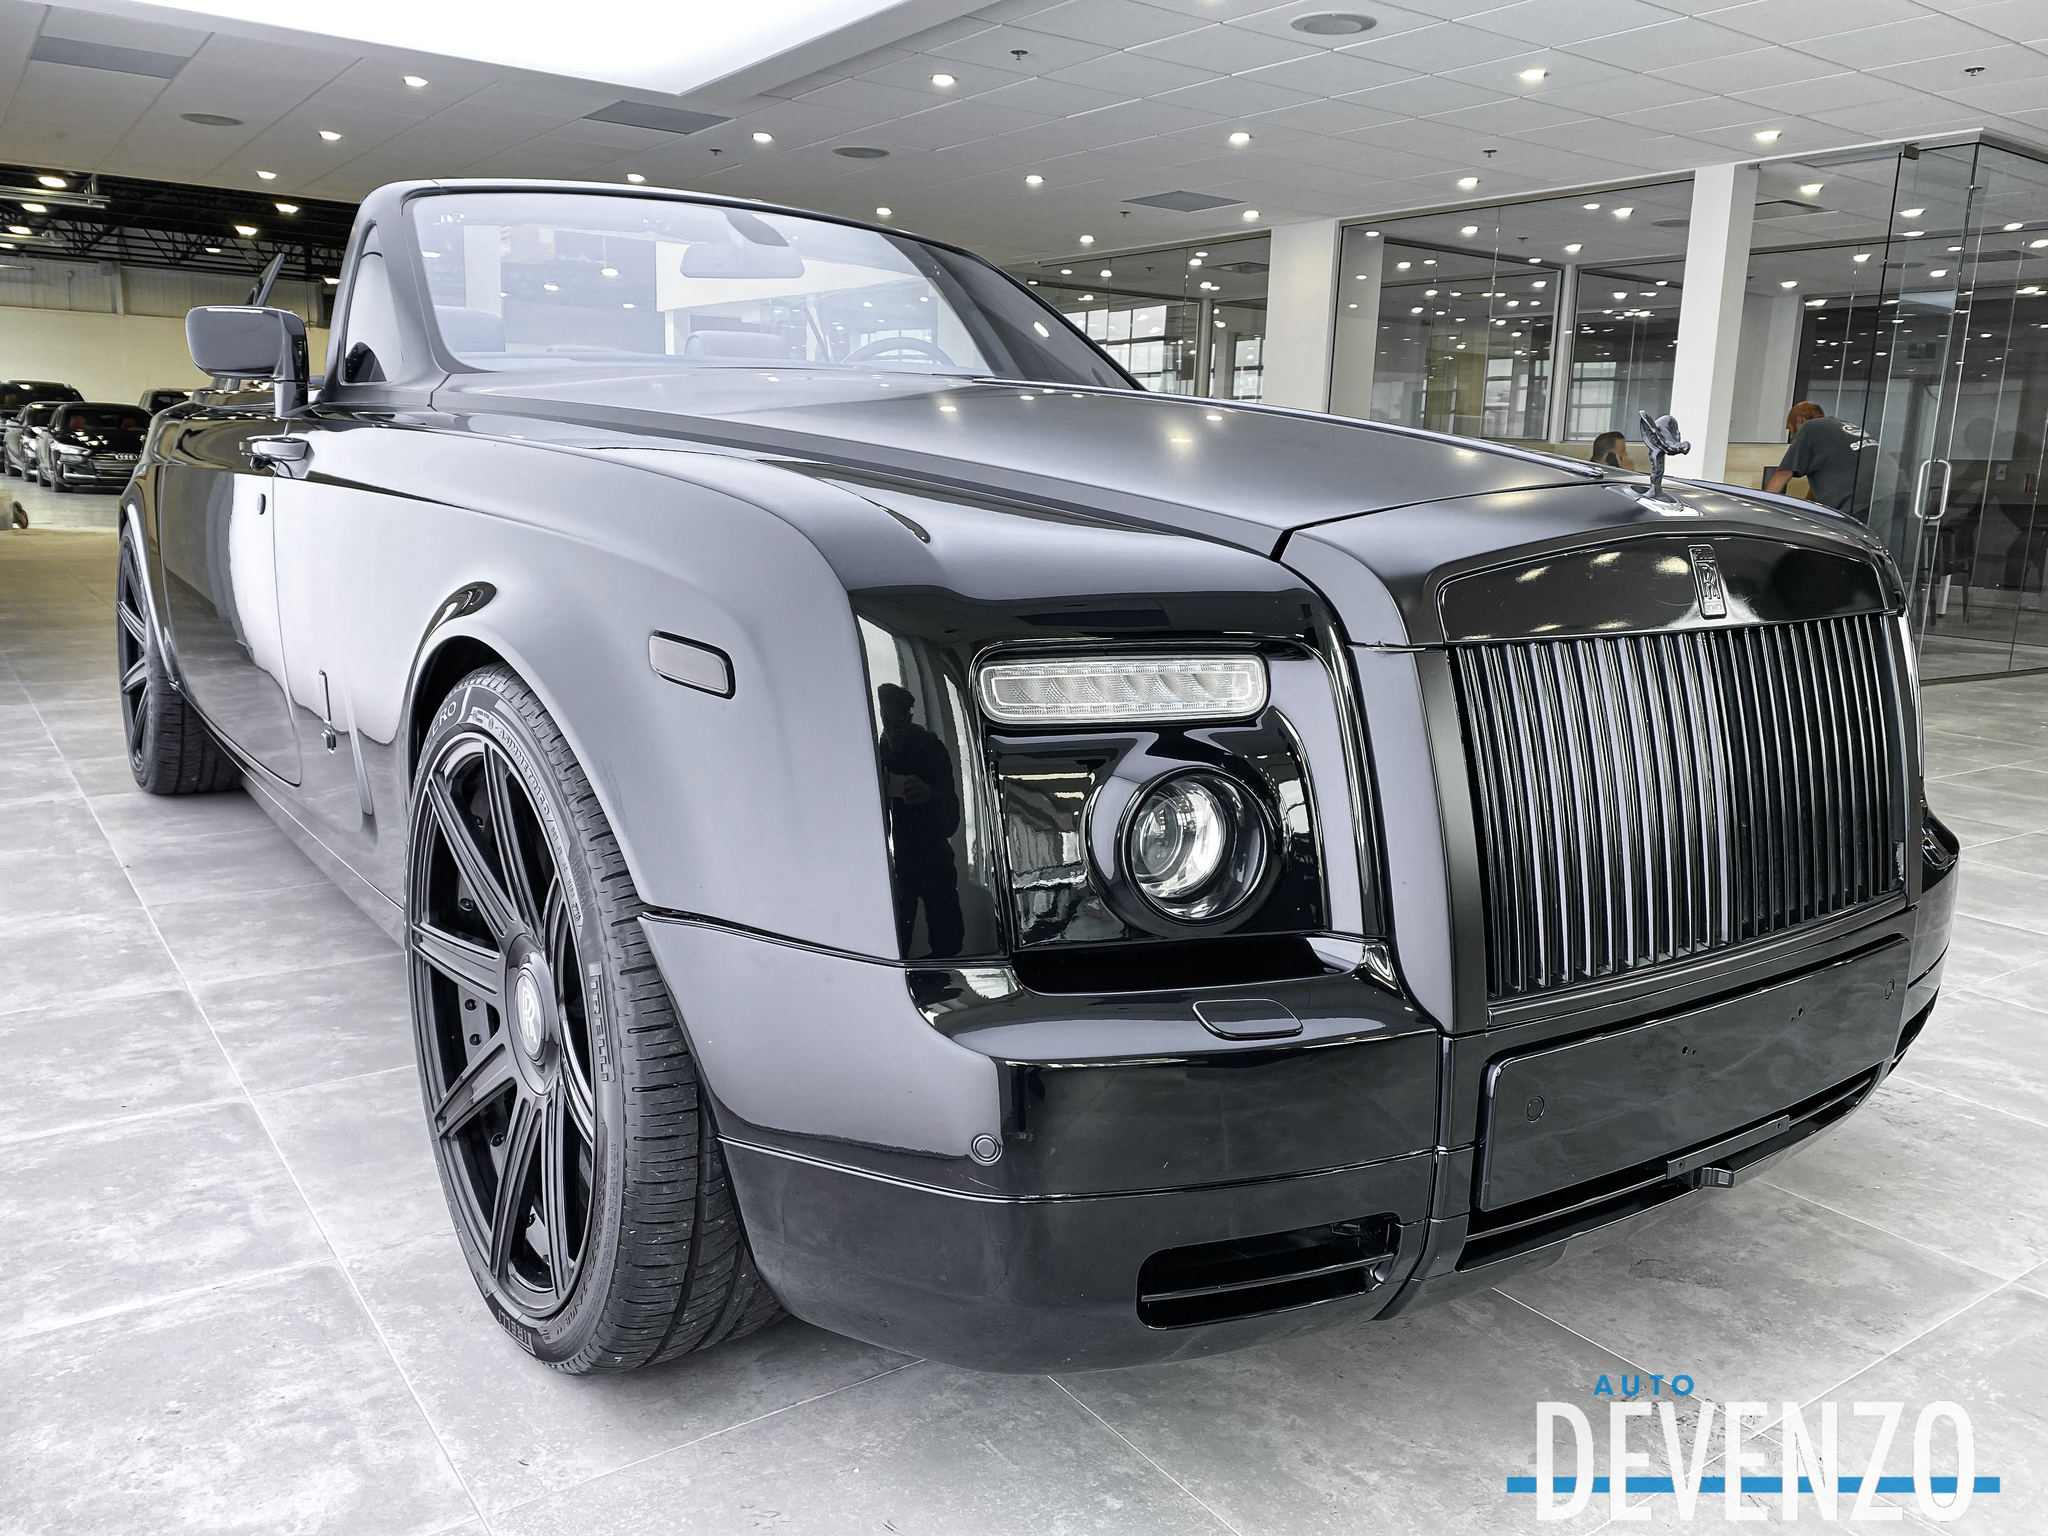 2009 Rolls-Royce Phantom Coupe PHANTOM DROPHEAD FORGED AG WHEELS OPTIONAL*** complet